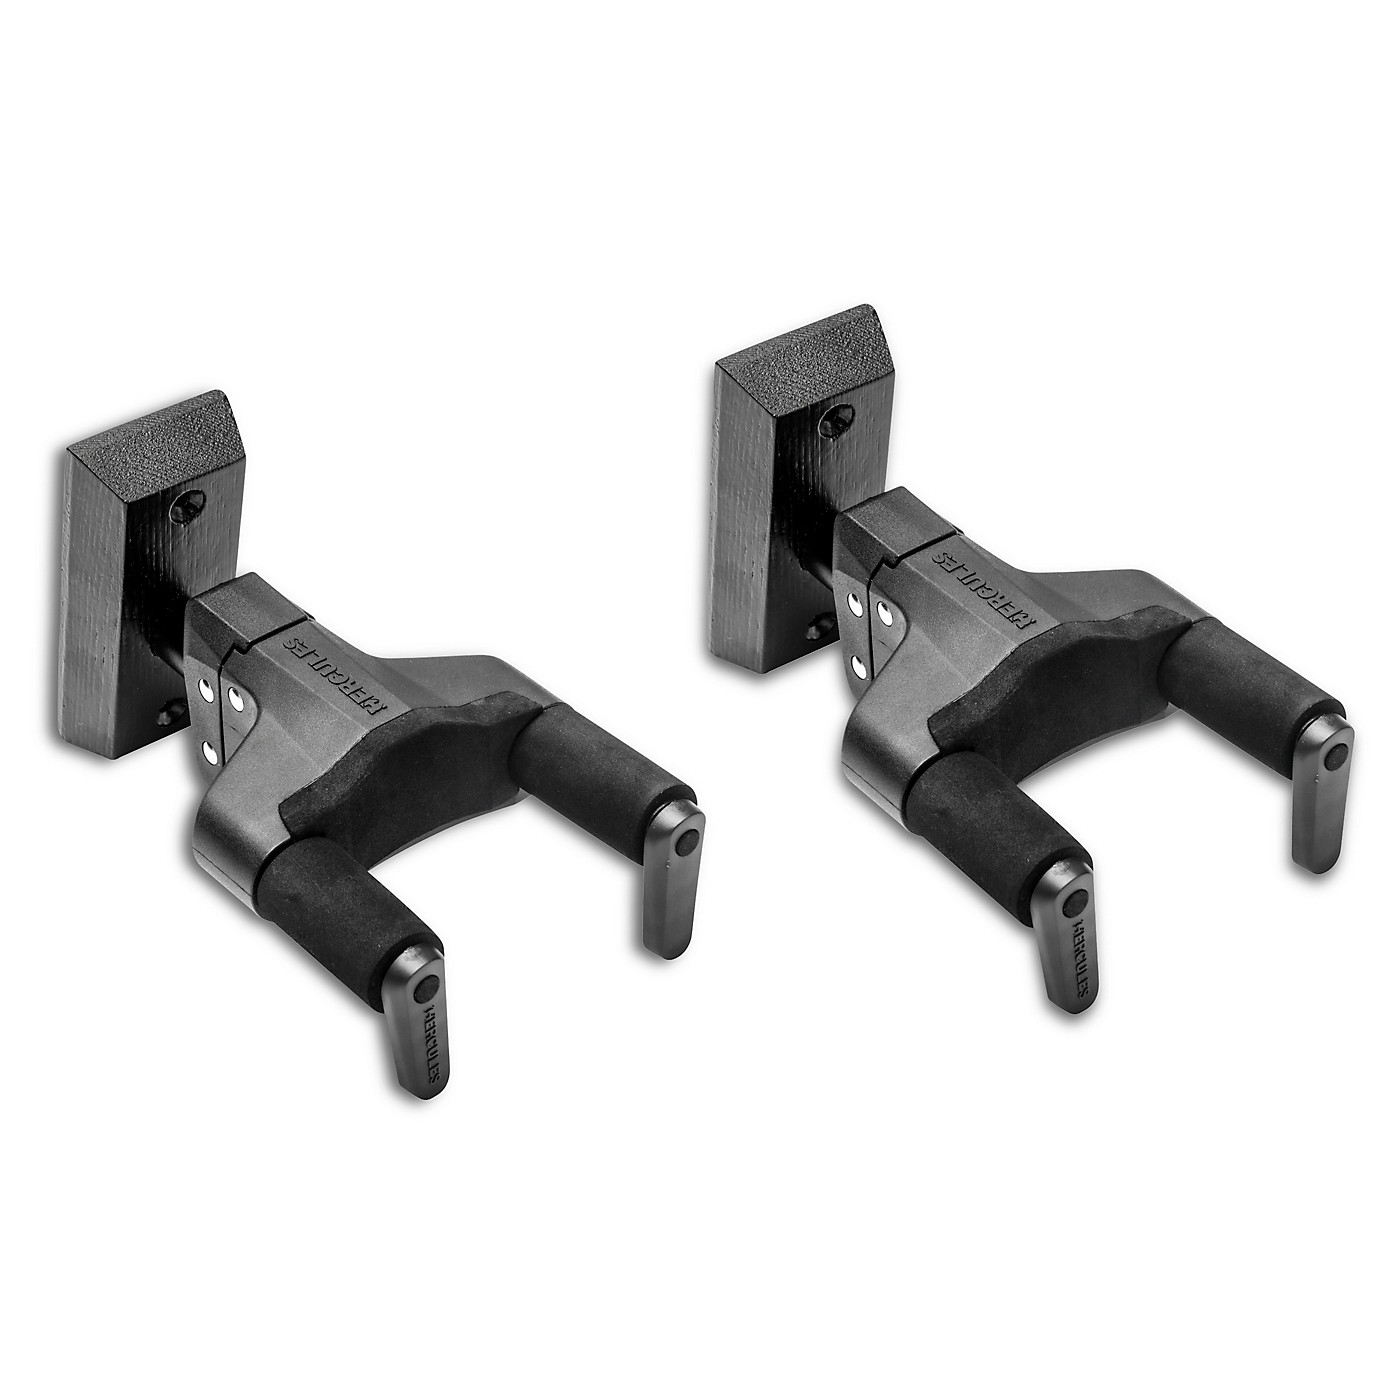 Hercules Stands GSP38WBKPLUS PLUS Series Universal AutoGrip Wall Mount Guitar Hanger - Black, 2-Pack thumbnail